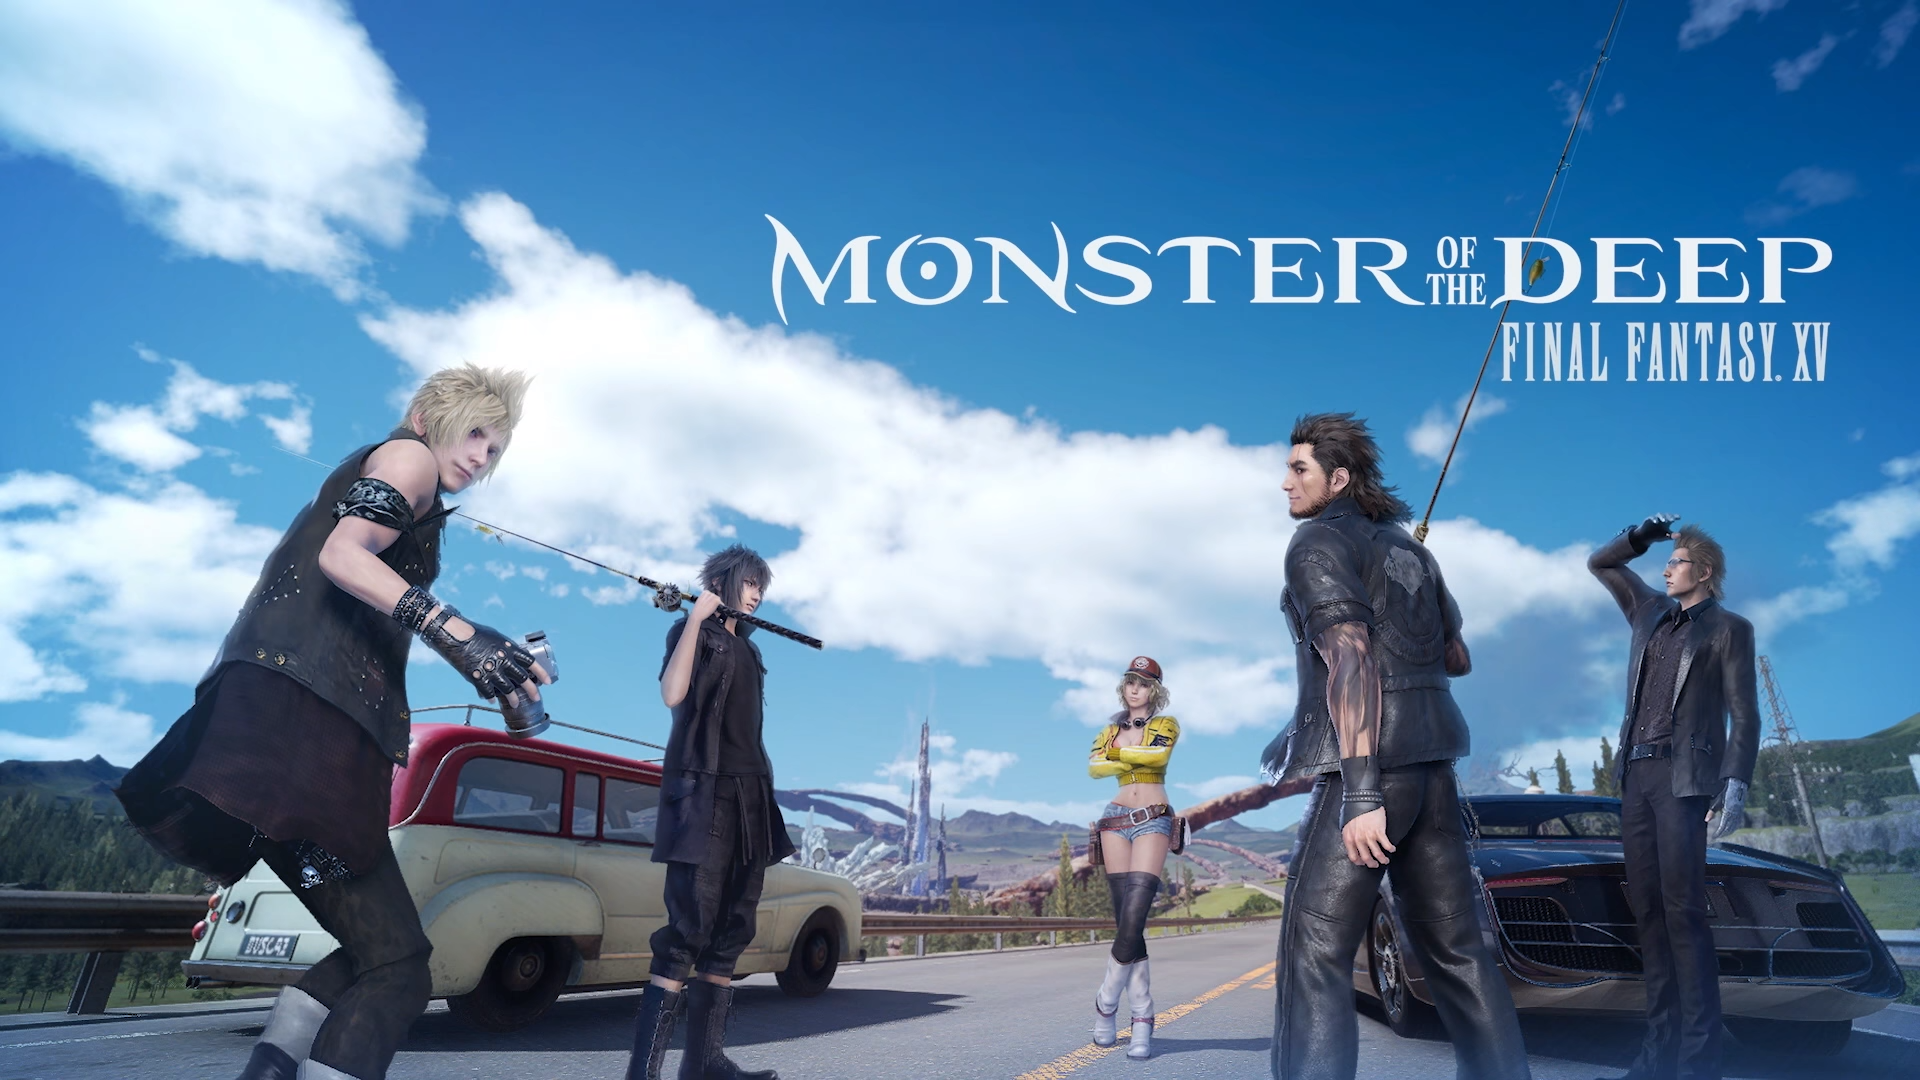 Monster of the deep final fantasy xv out today for for Ffxv fishing rods